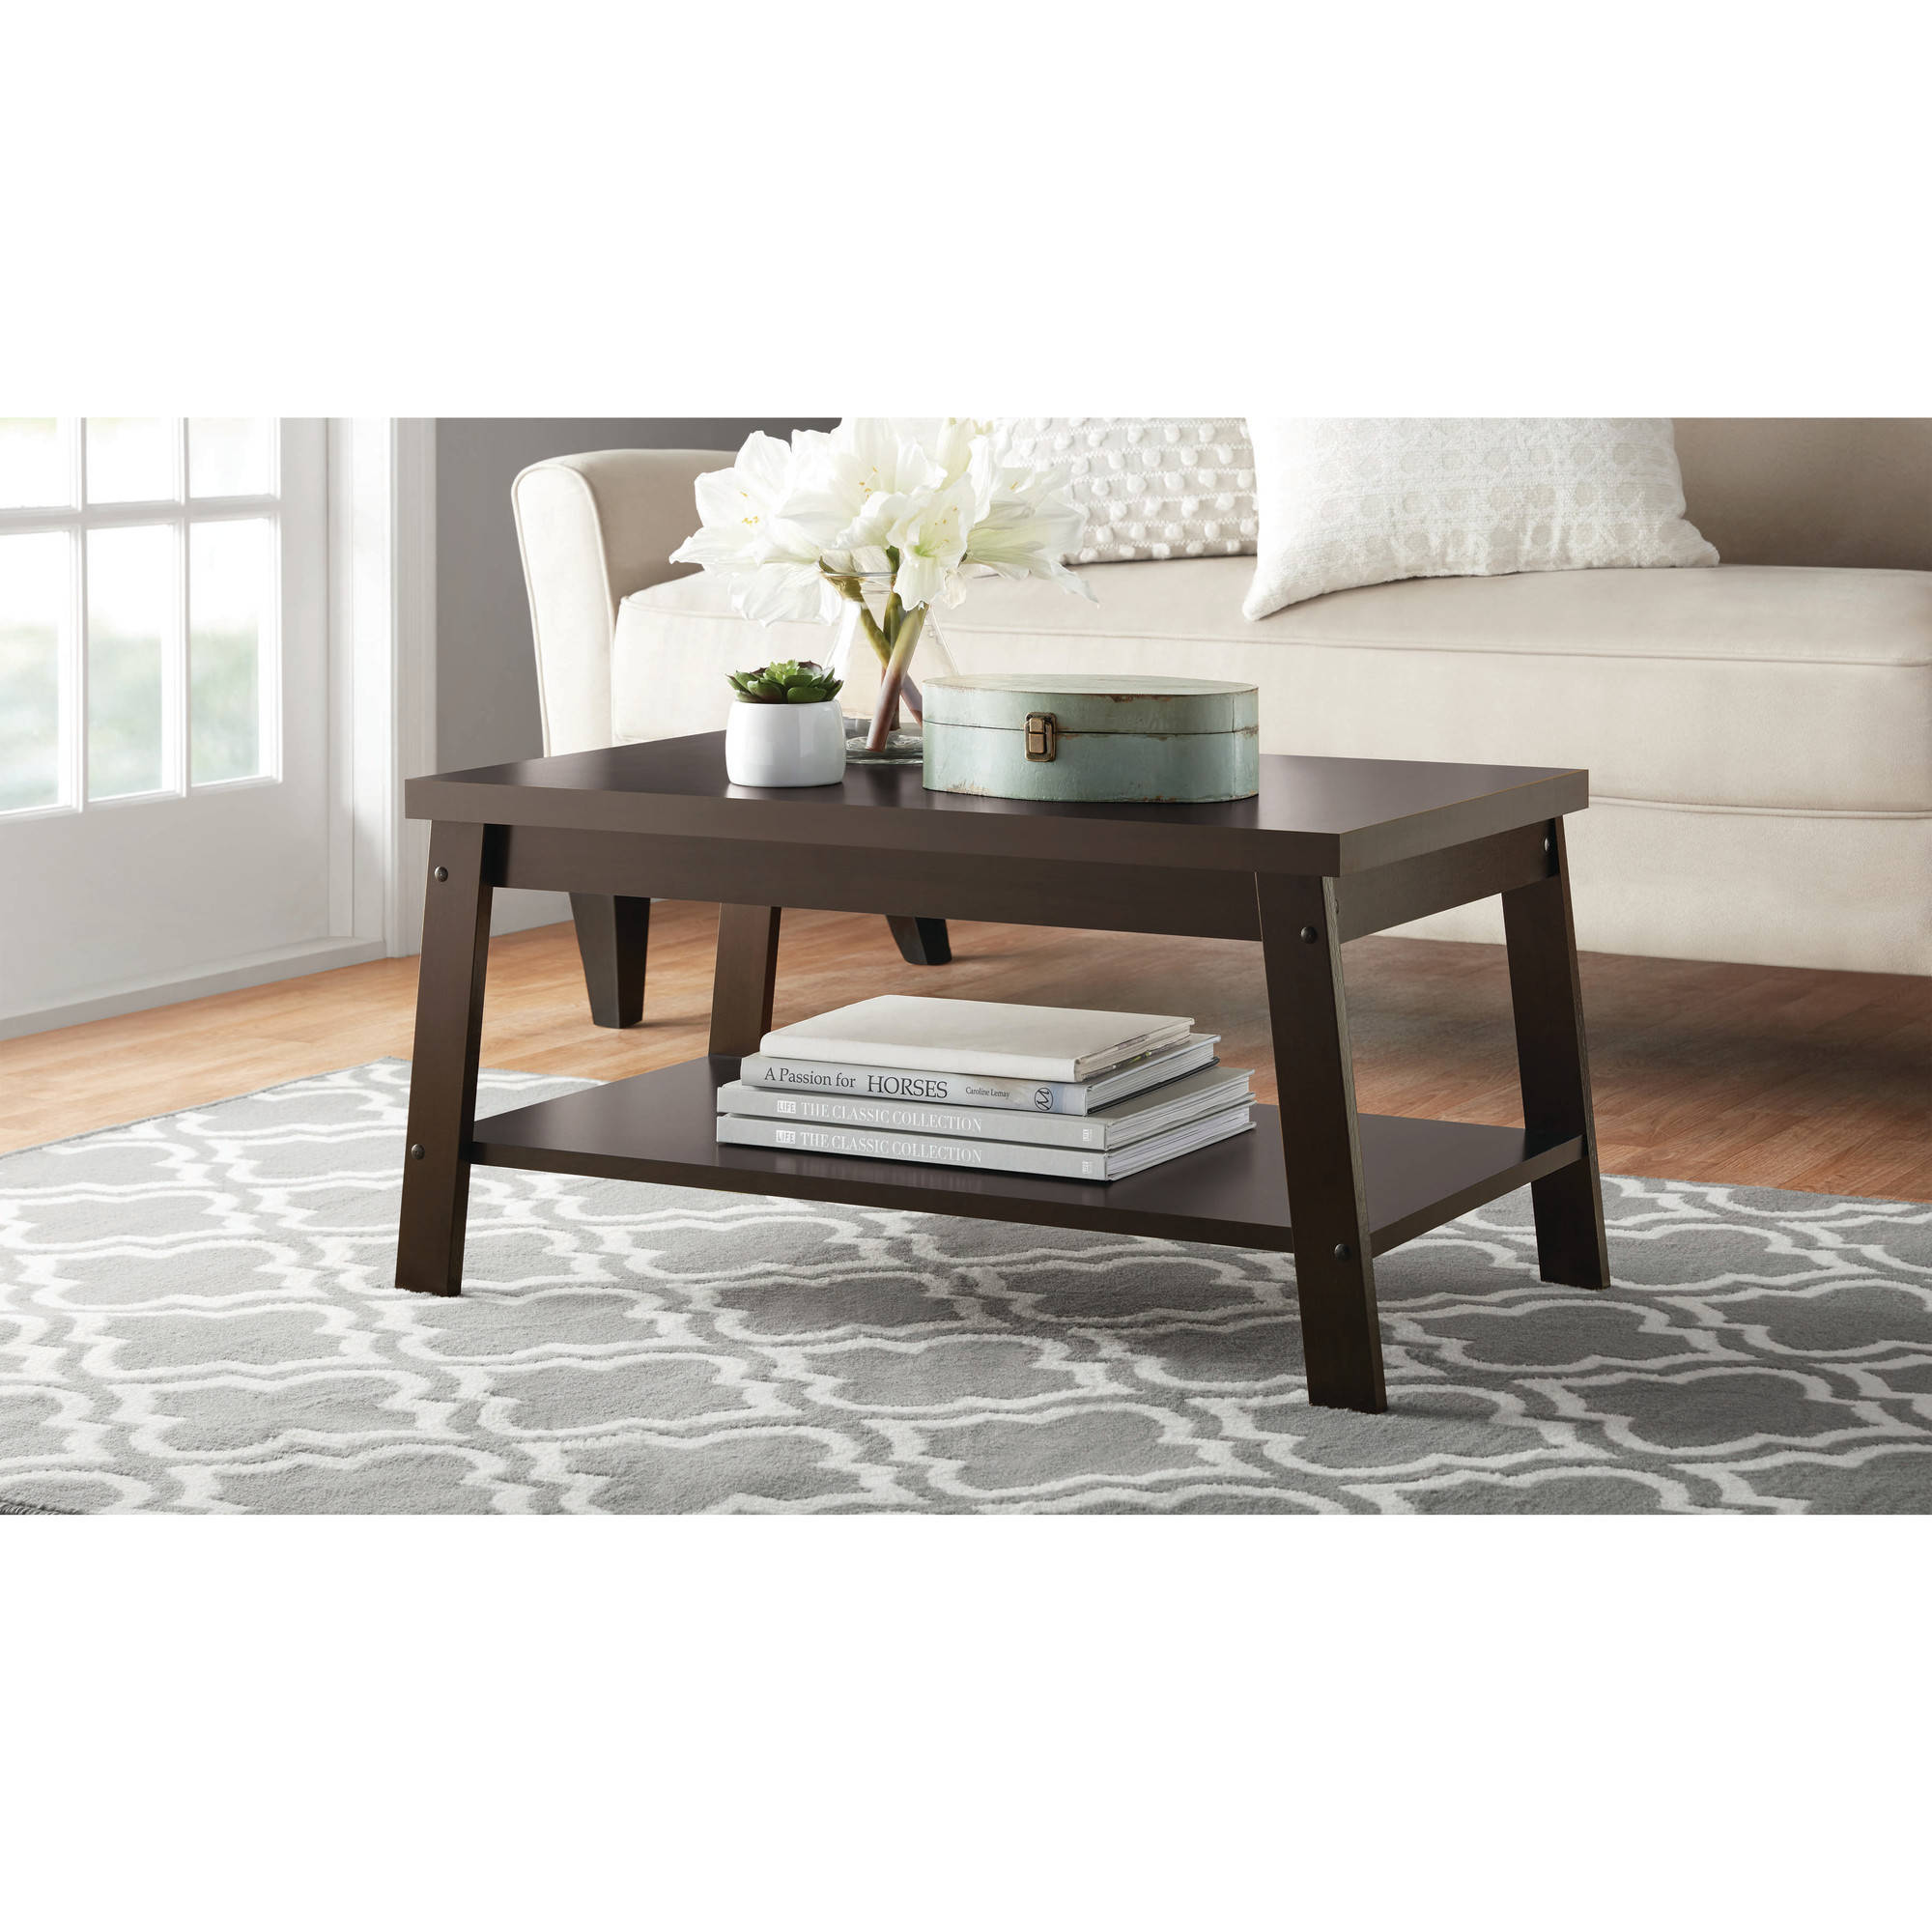 the super awesome logan end table mira road mainstays coffee multiple finishes modern furniture direct apartment mirror top oval dining room antique base style built wine rack